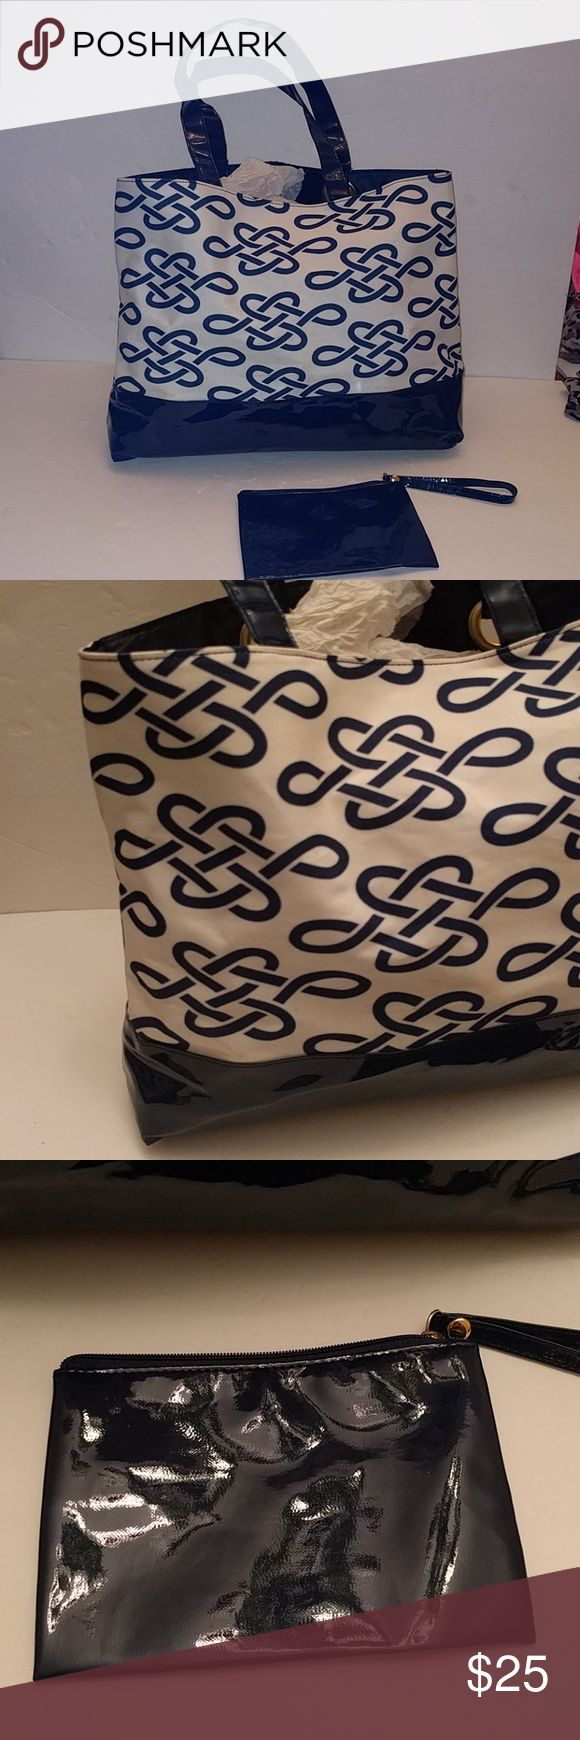 Estee Lauder celtic knot blue and white tote bag Good condition, small spots of wear both pictured. This tote is 15 inches wide and 11.5 inches tall. Comes with a shiny navy wristlet Estee Lauder Bags Totes